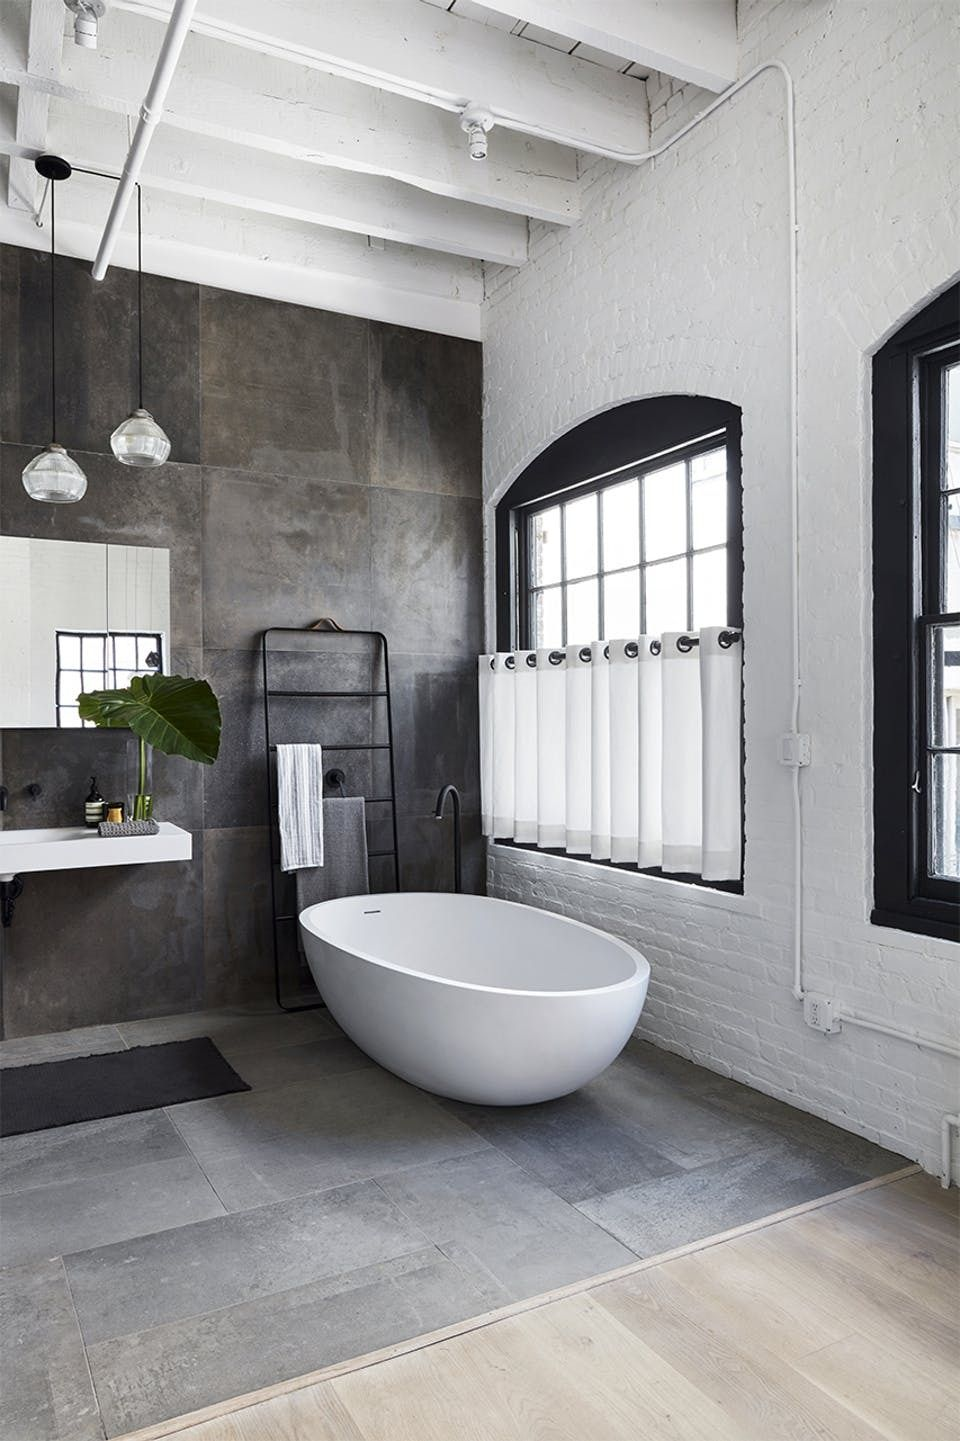 Check Out These Fantastic Bathroom Decor Ideas For Your Home Click On Image To See Many More Beautiful Bathroom Decor Diy Bathroom Remodel Beautiful Bathrooms